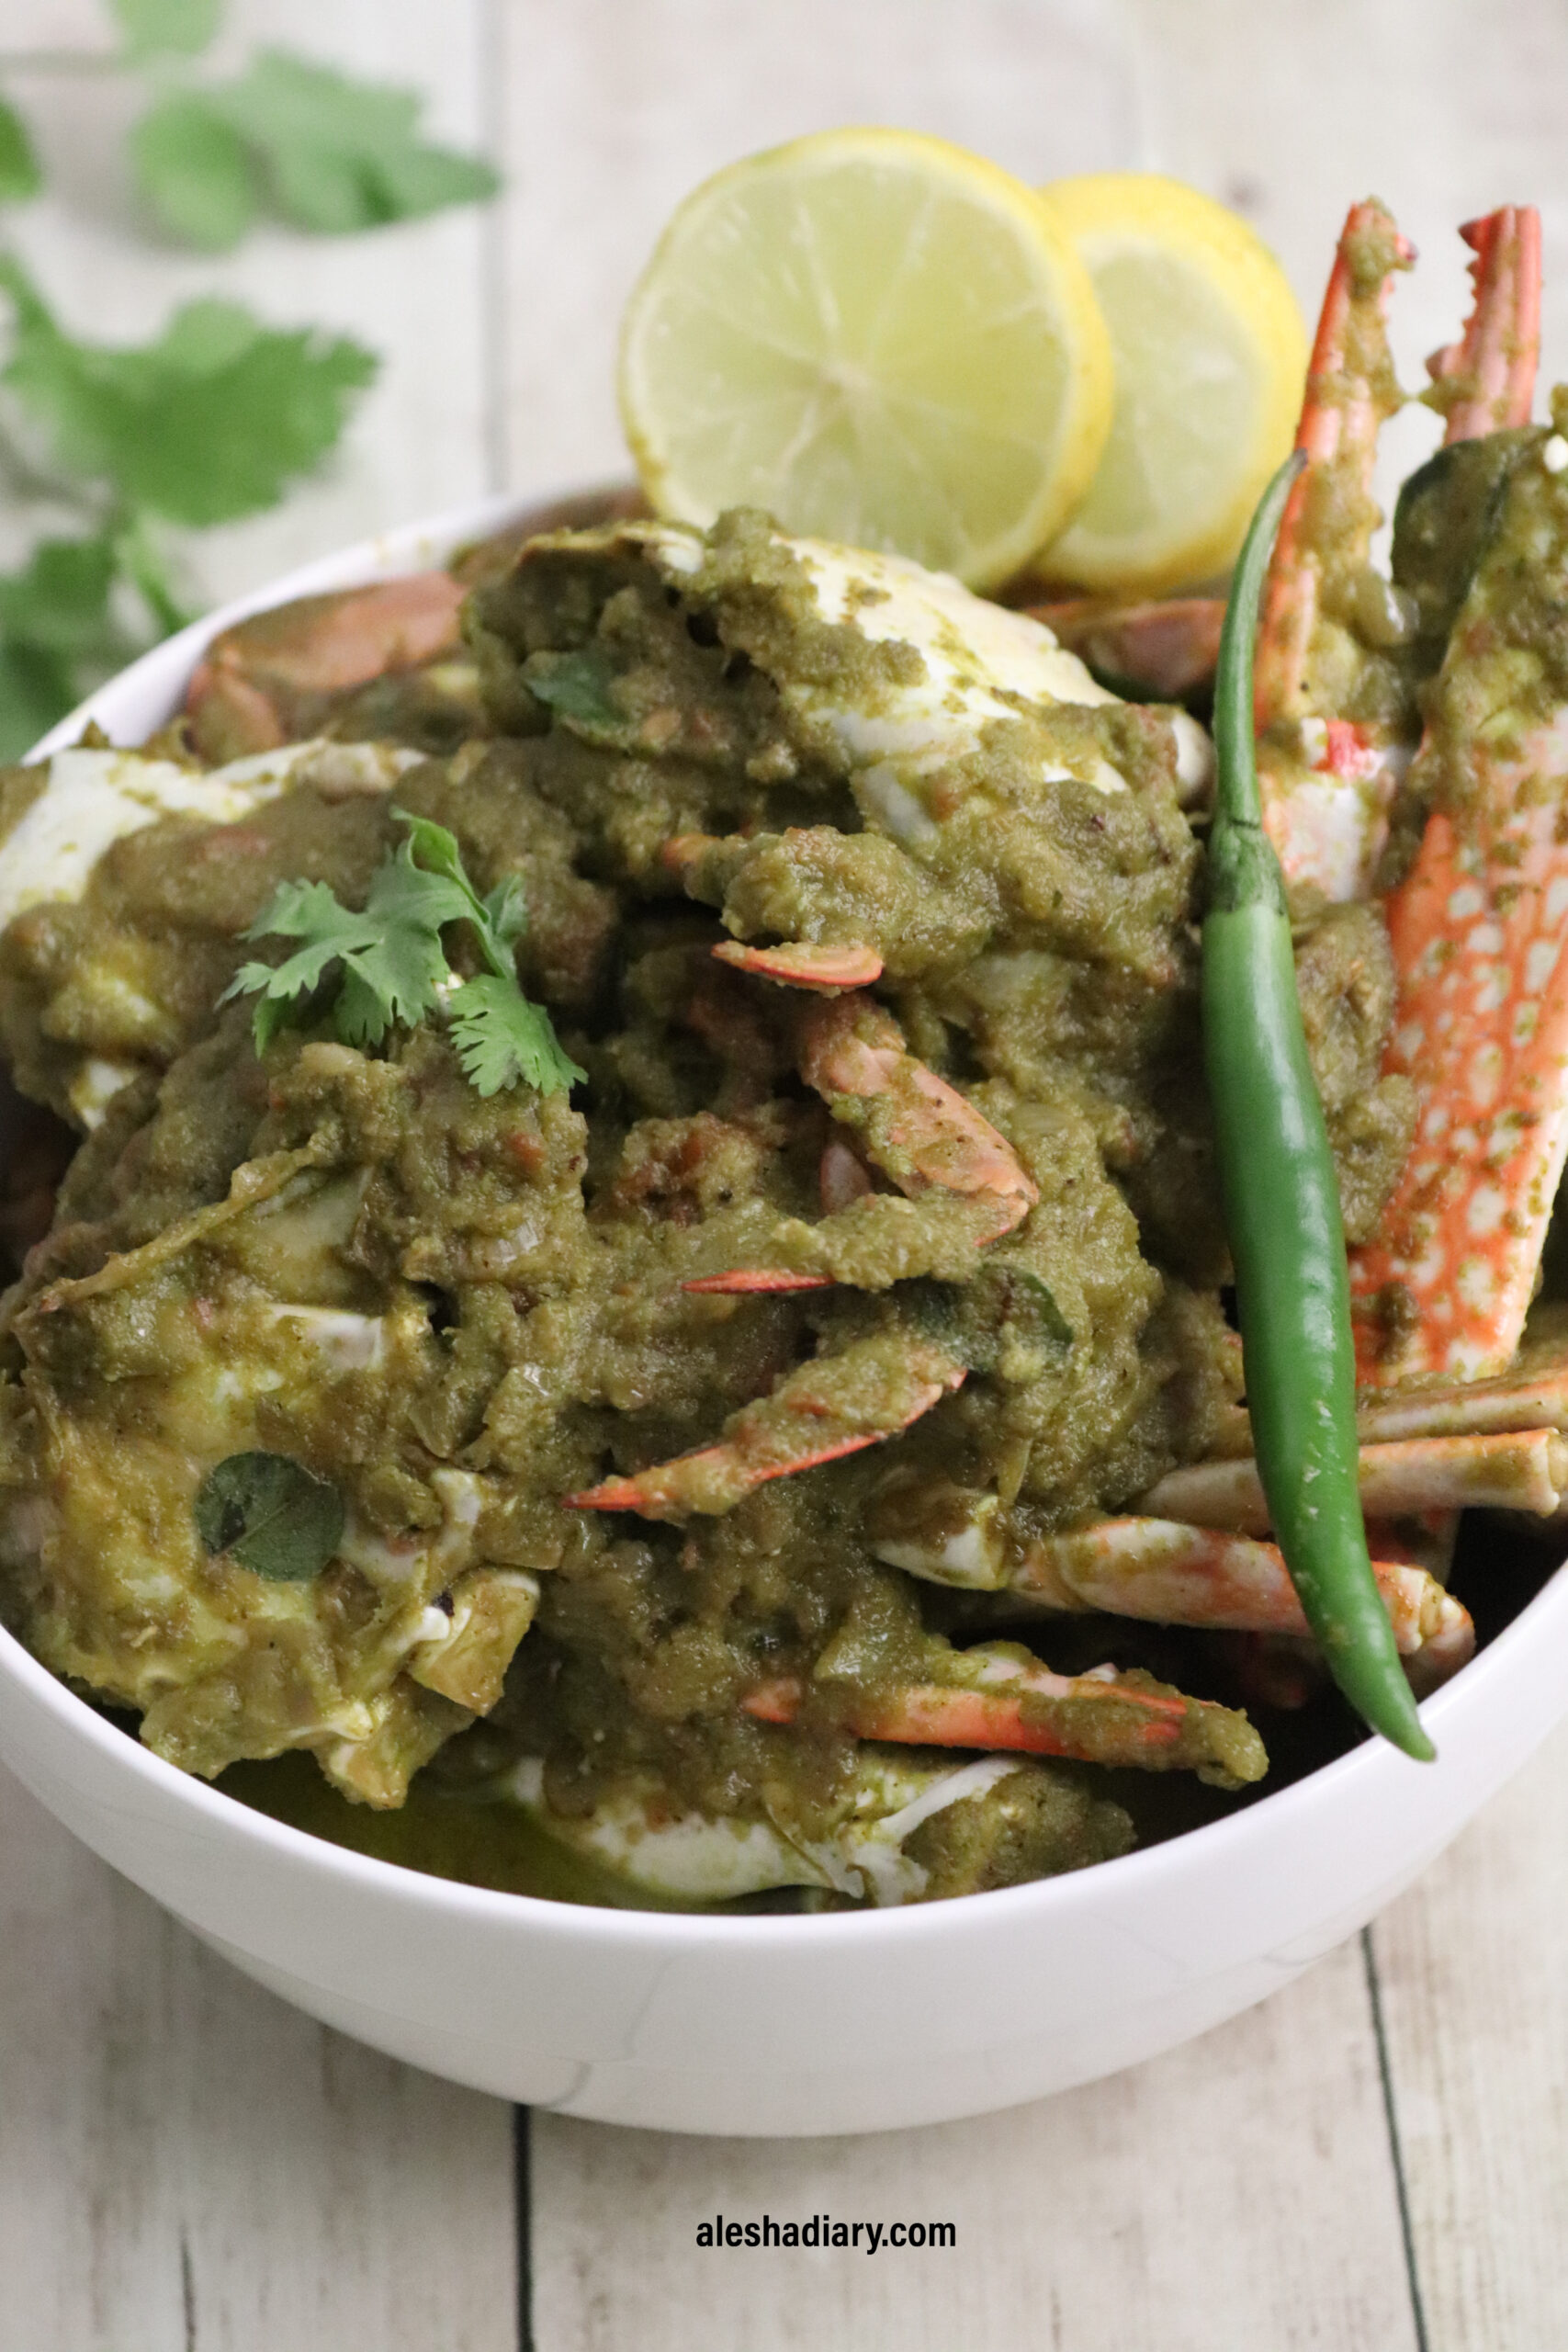 Crab Green masala